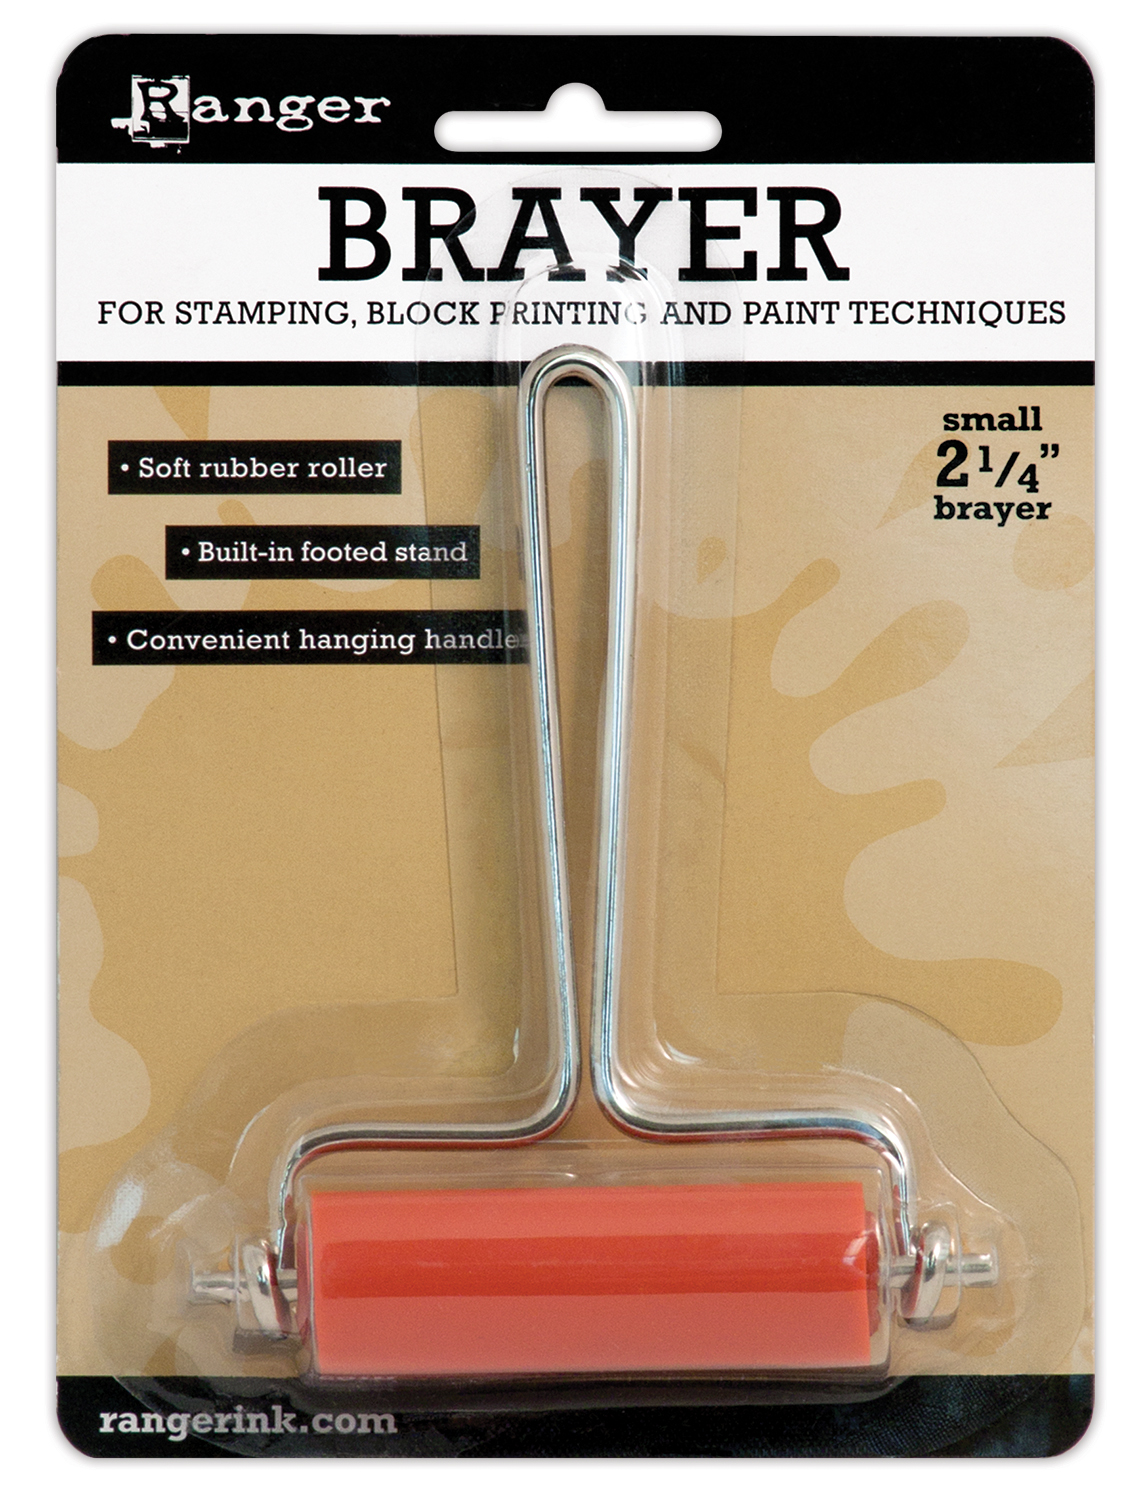 BRAYER SMALL 2-1/4